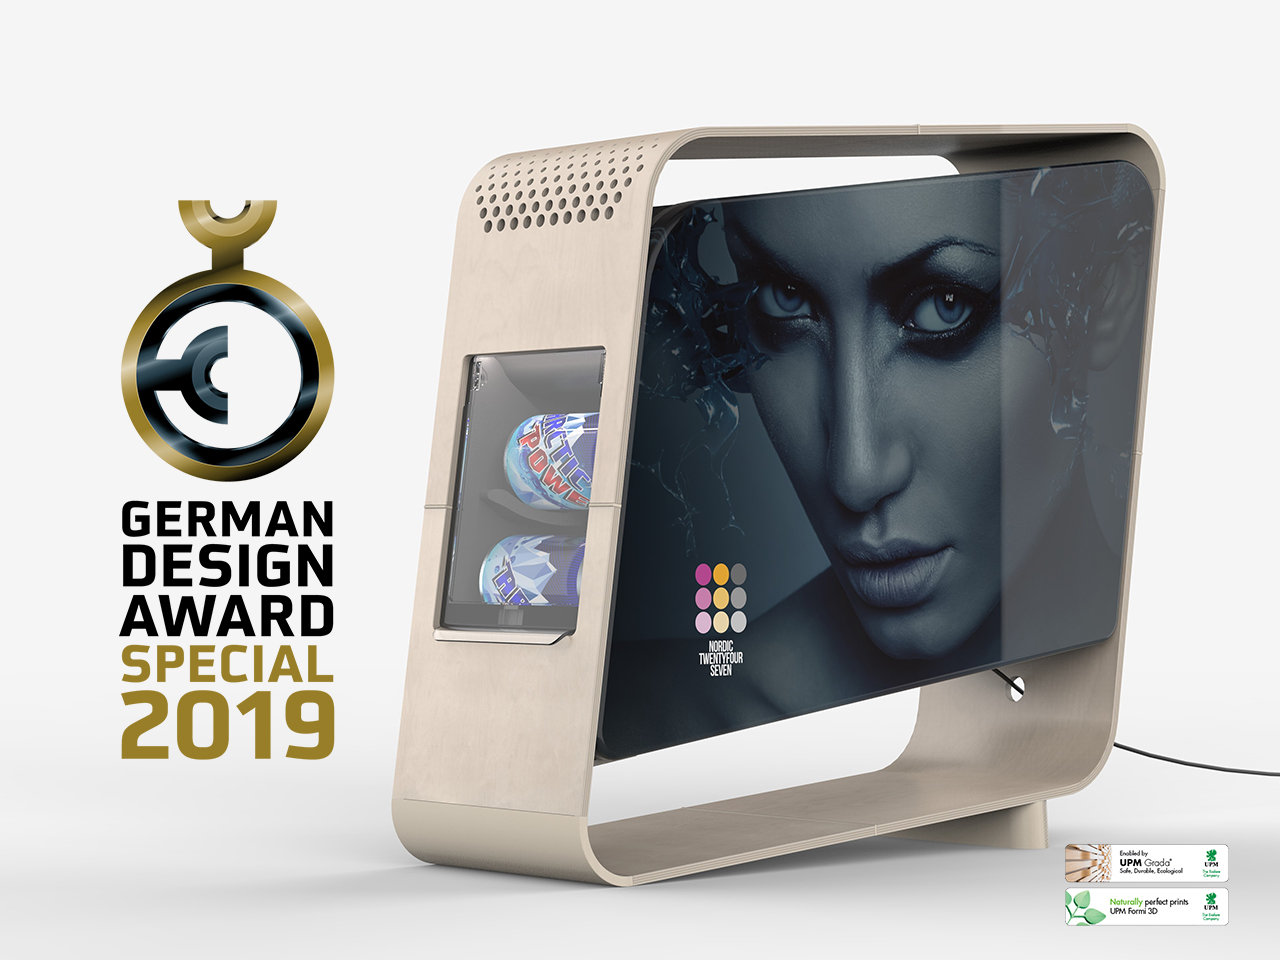 GERMAN DESIGN AWARD 2019   We won the Special Mention award (category: Retail) in the German Design Award 2019.